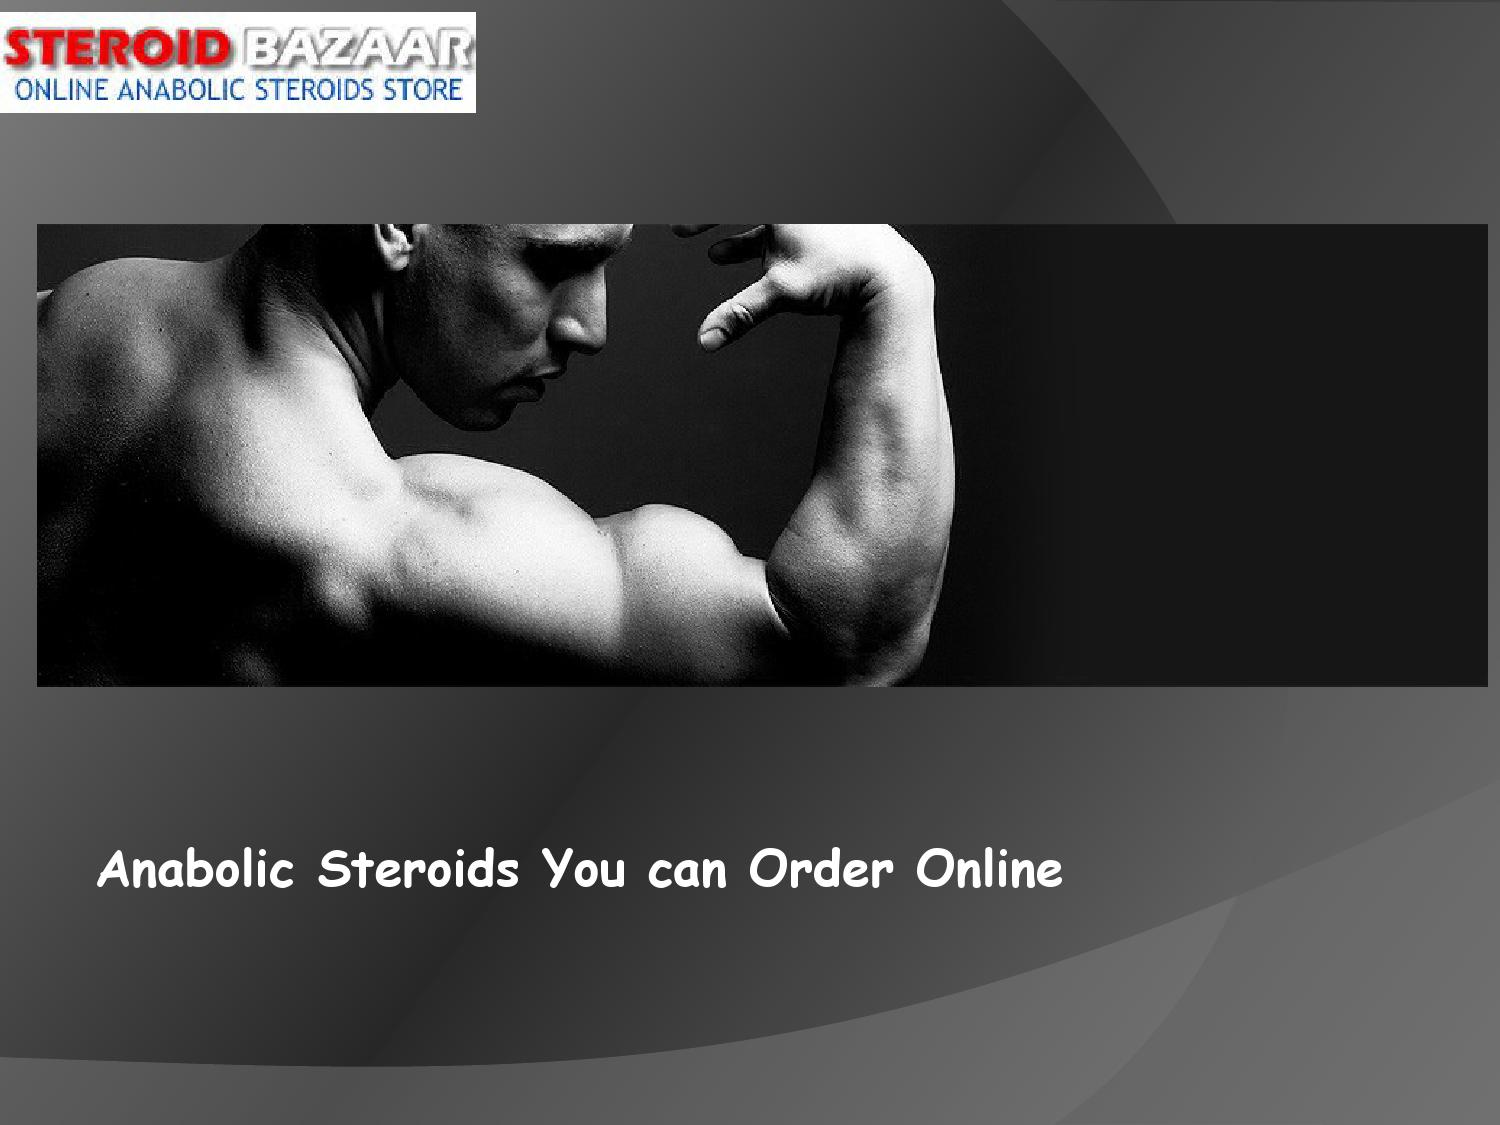 Anabolic steroids you can Order Online by Steroid Bazaar ...